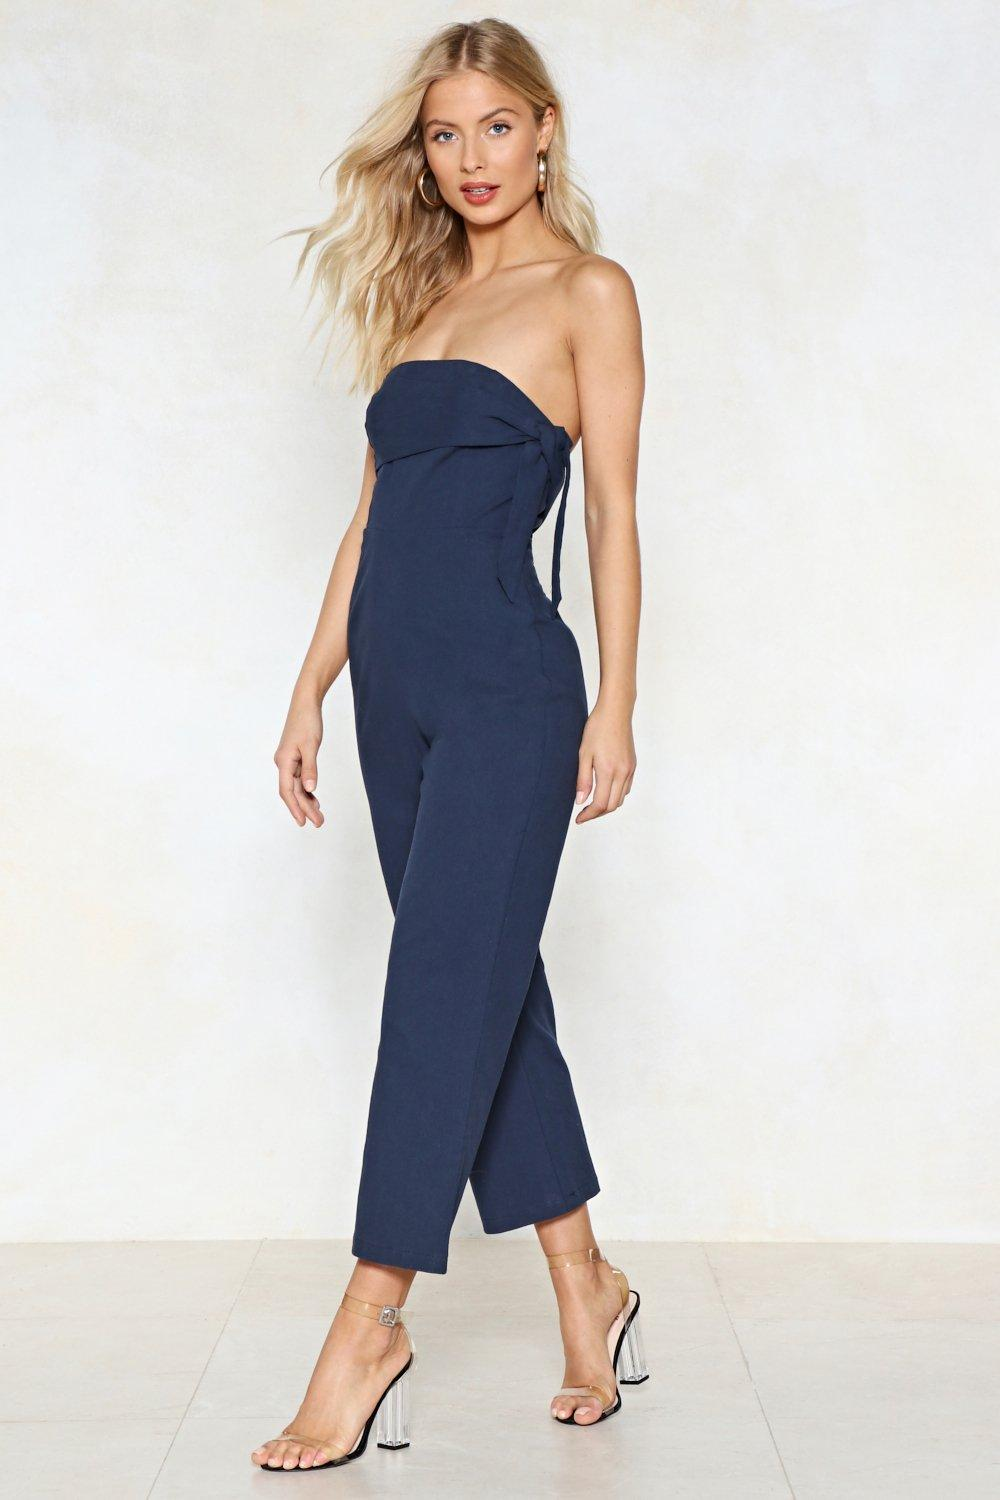 7793d6c6f73 Going Down Town Strapless Jumpsuit